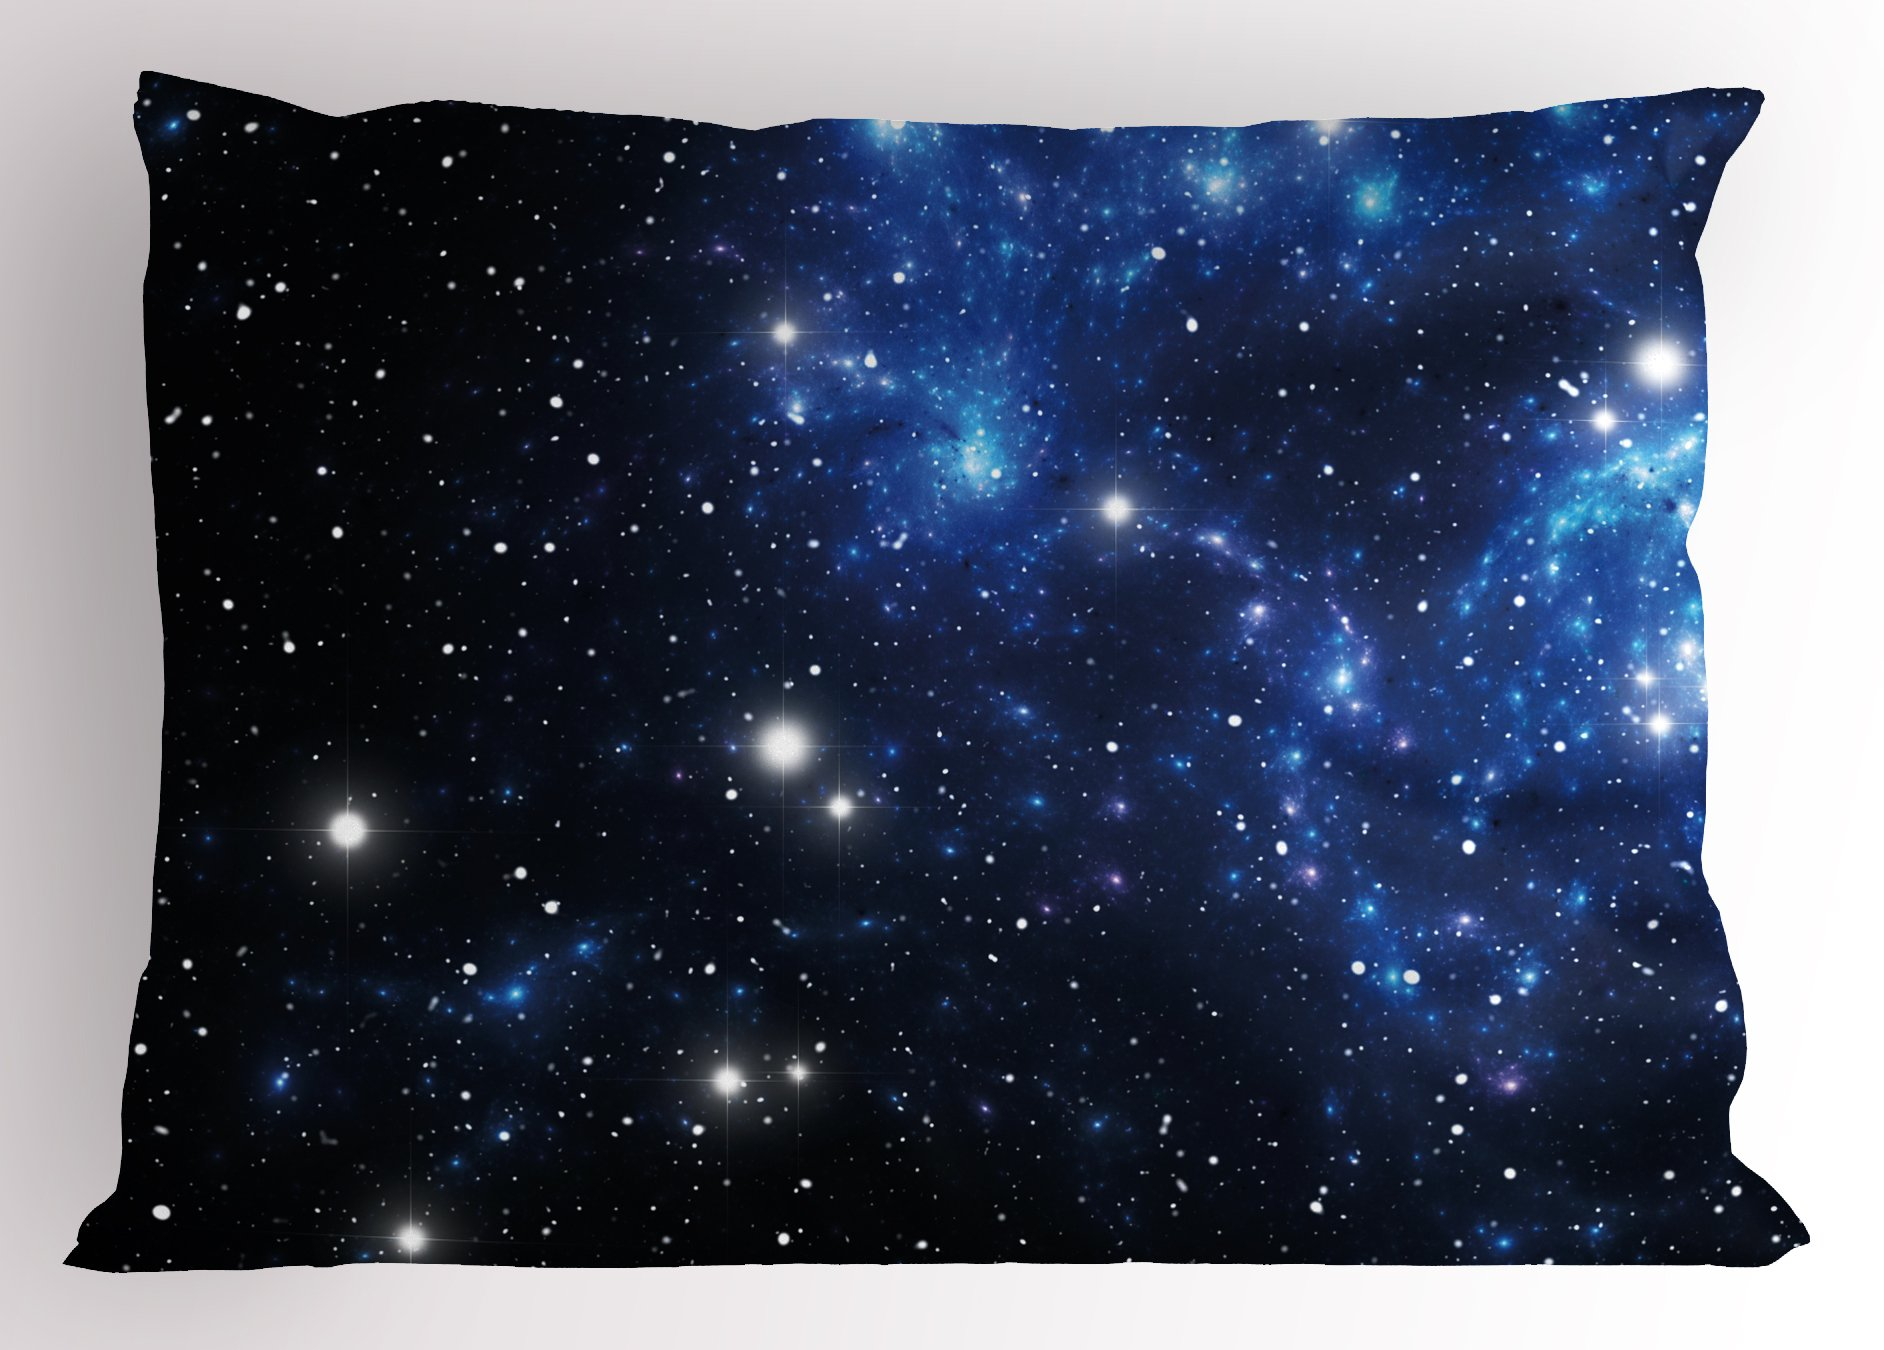 Ambesonne Constellation Pillow Sham, Outer Space Star Nebula Astral Cluster Astronomy Theme Galaxy Mystery, Decorative Standard Size Printed Pillowcase, 26 X 20 inches, Blue Black White